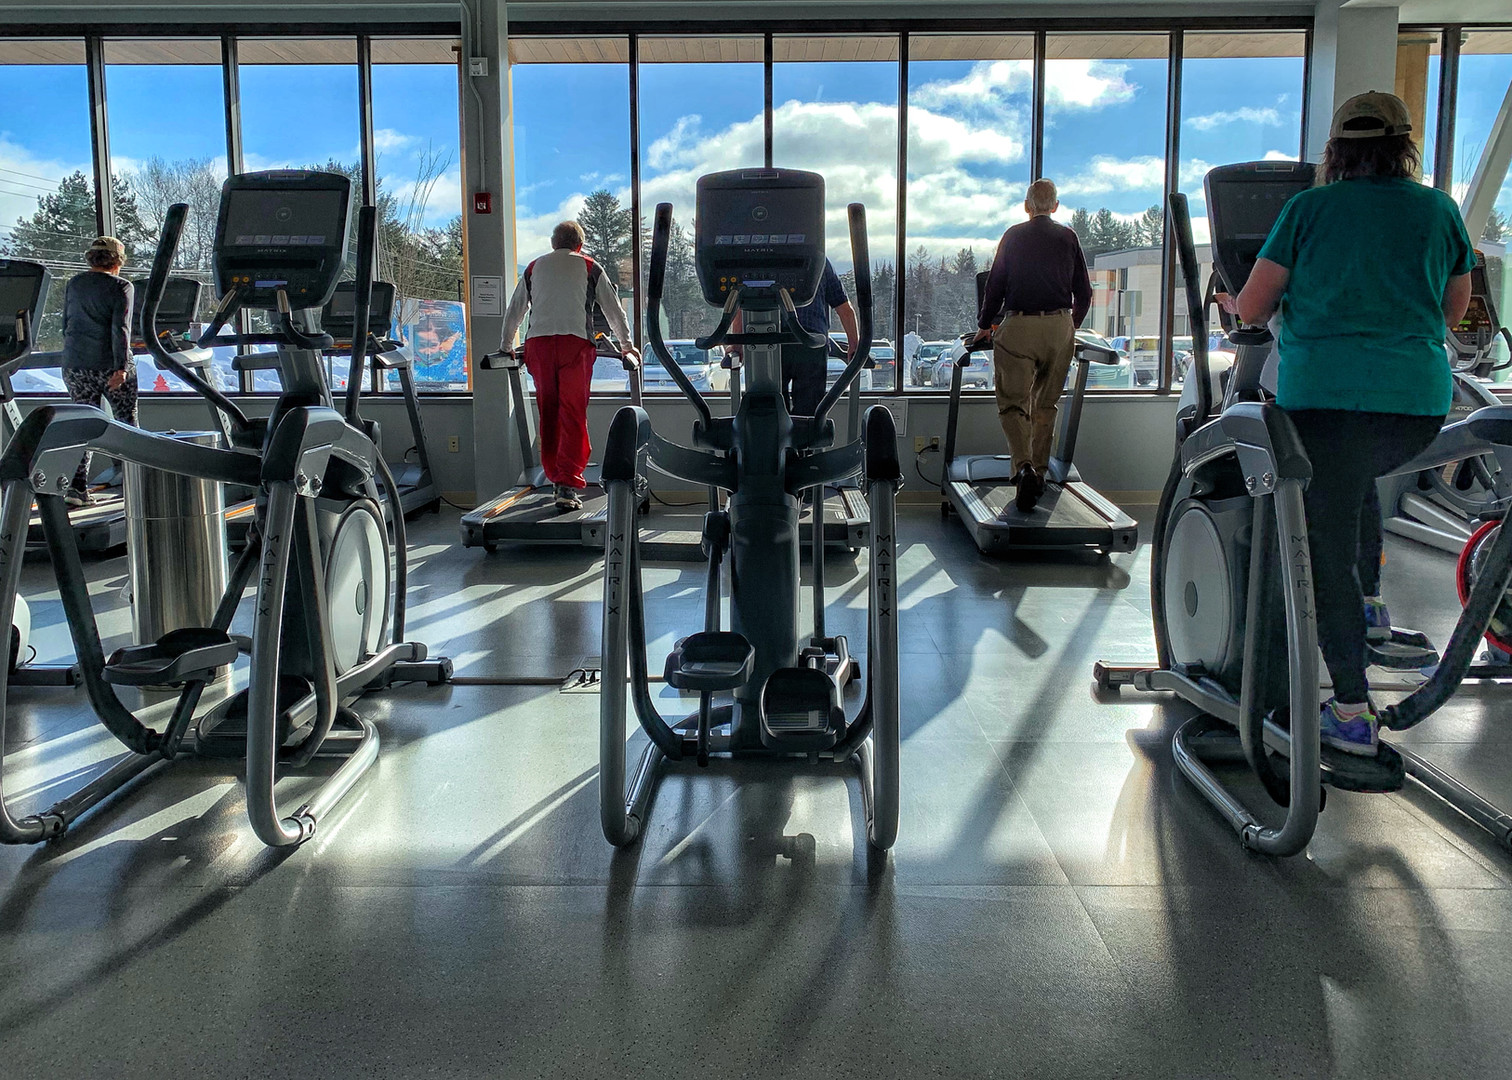 Variety of Cardio Equipment